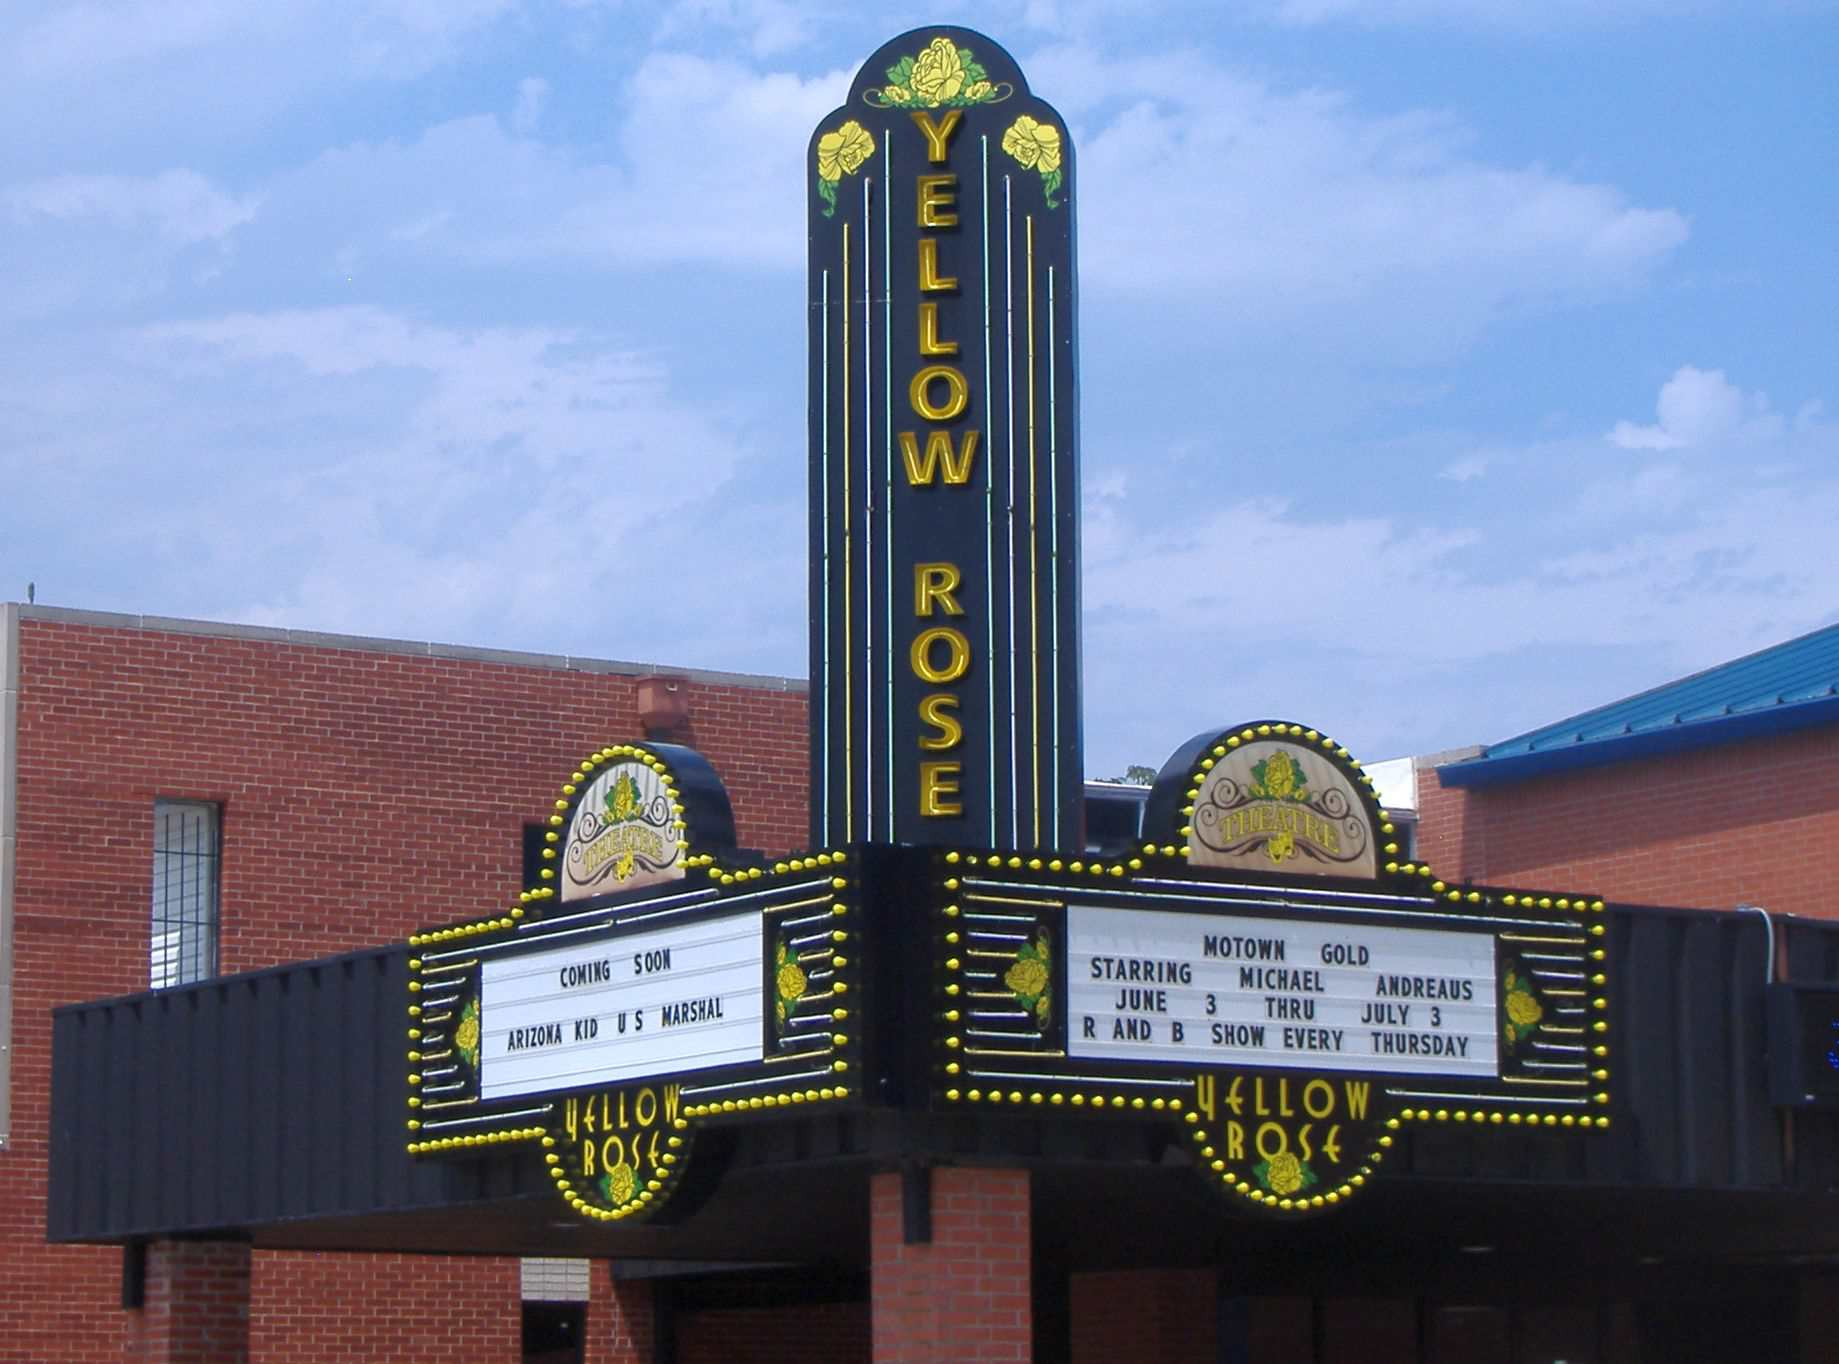 Things to Do and See in the Moore, Oklahoma Area